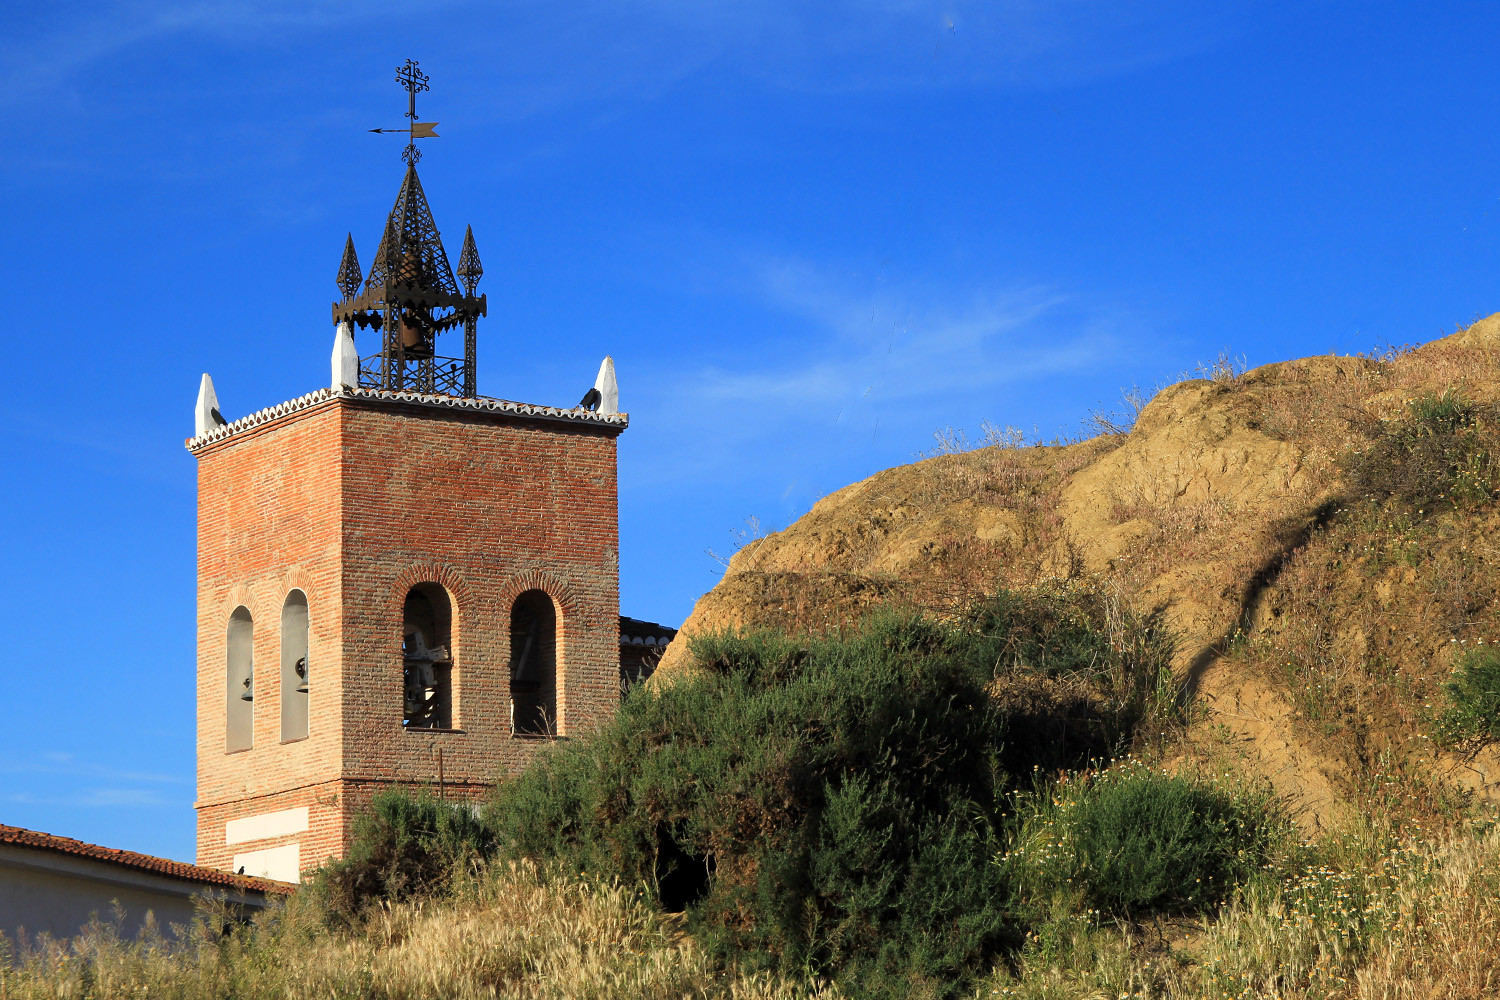 The Church of Purullena